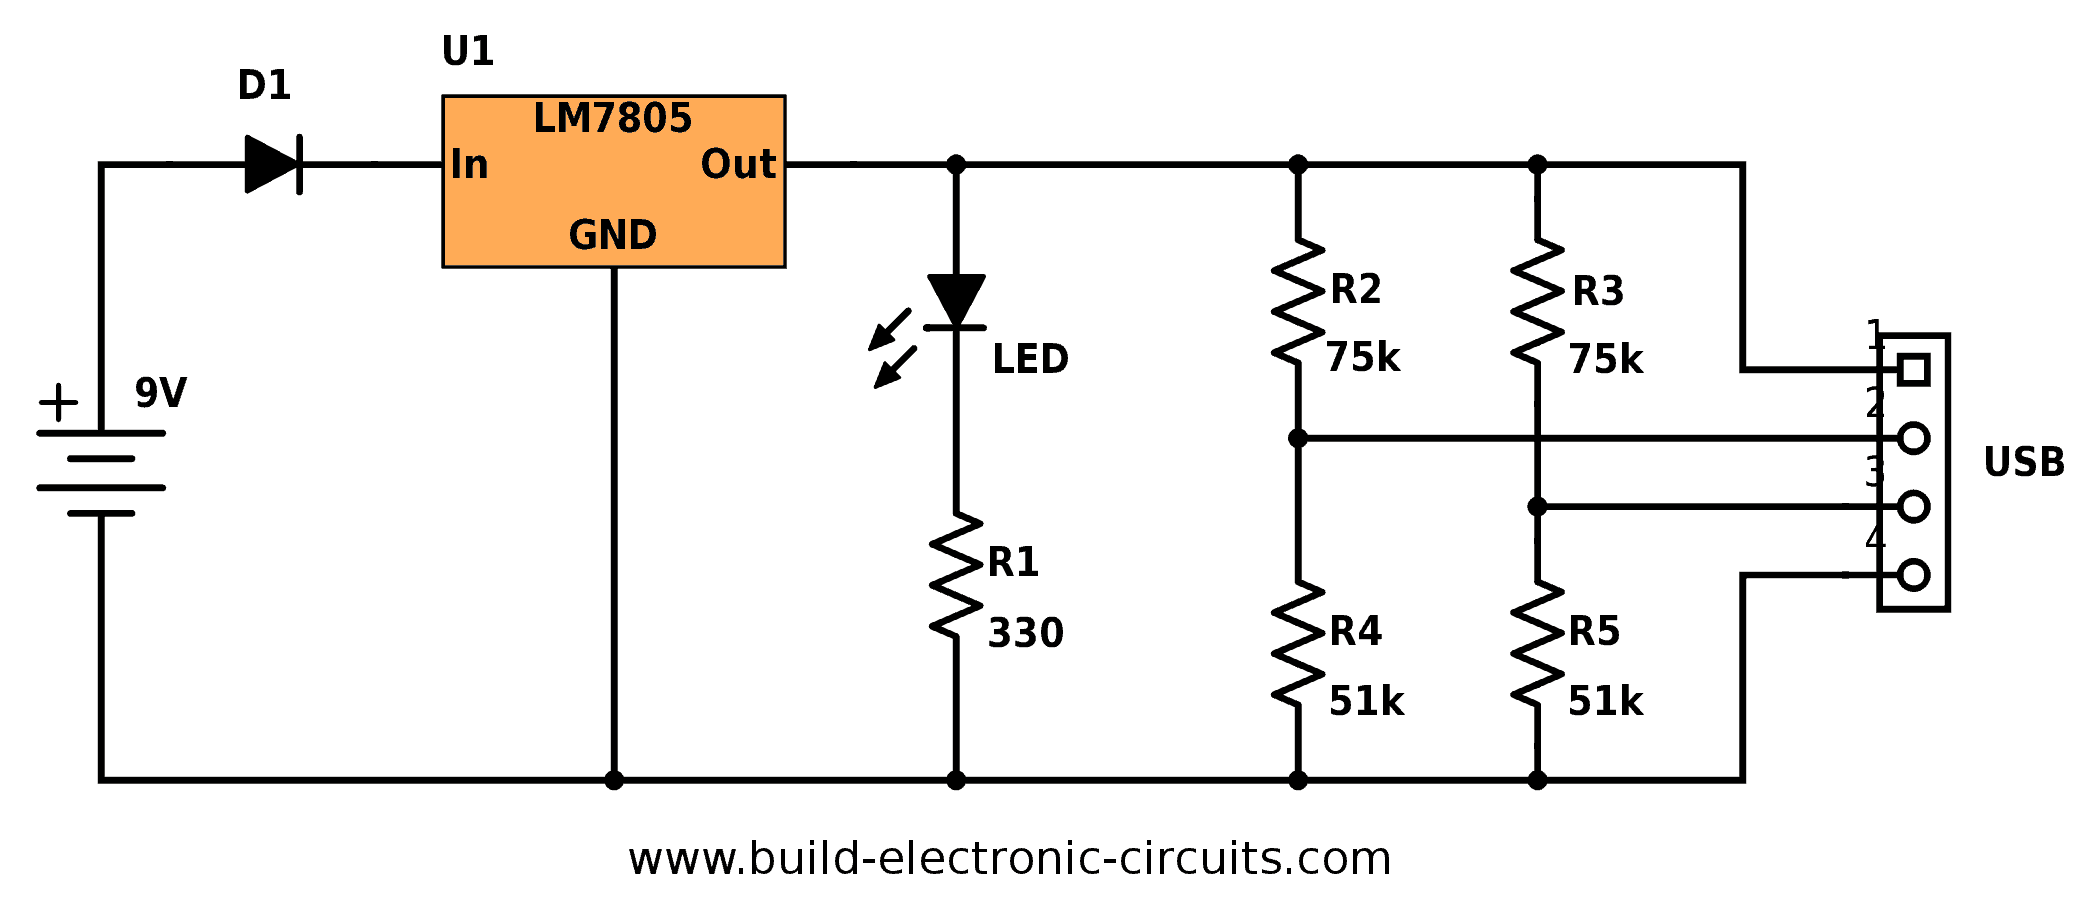 Portable Usb Charger Circuit Build Electronic Circuits In This Simple The Two Resistors R1 And R2 Represent Ordinary Diagram